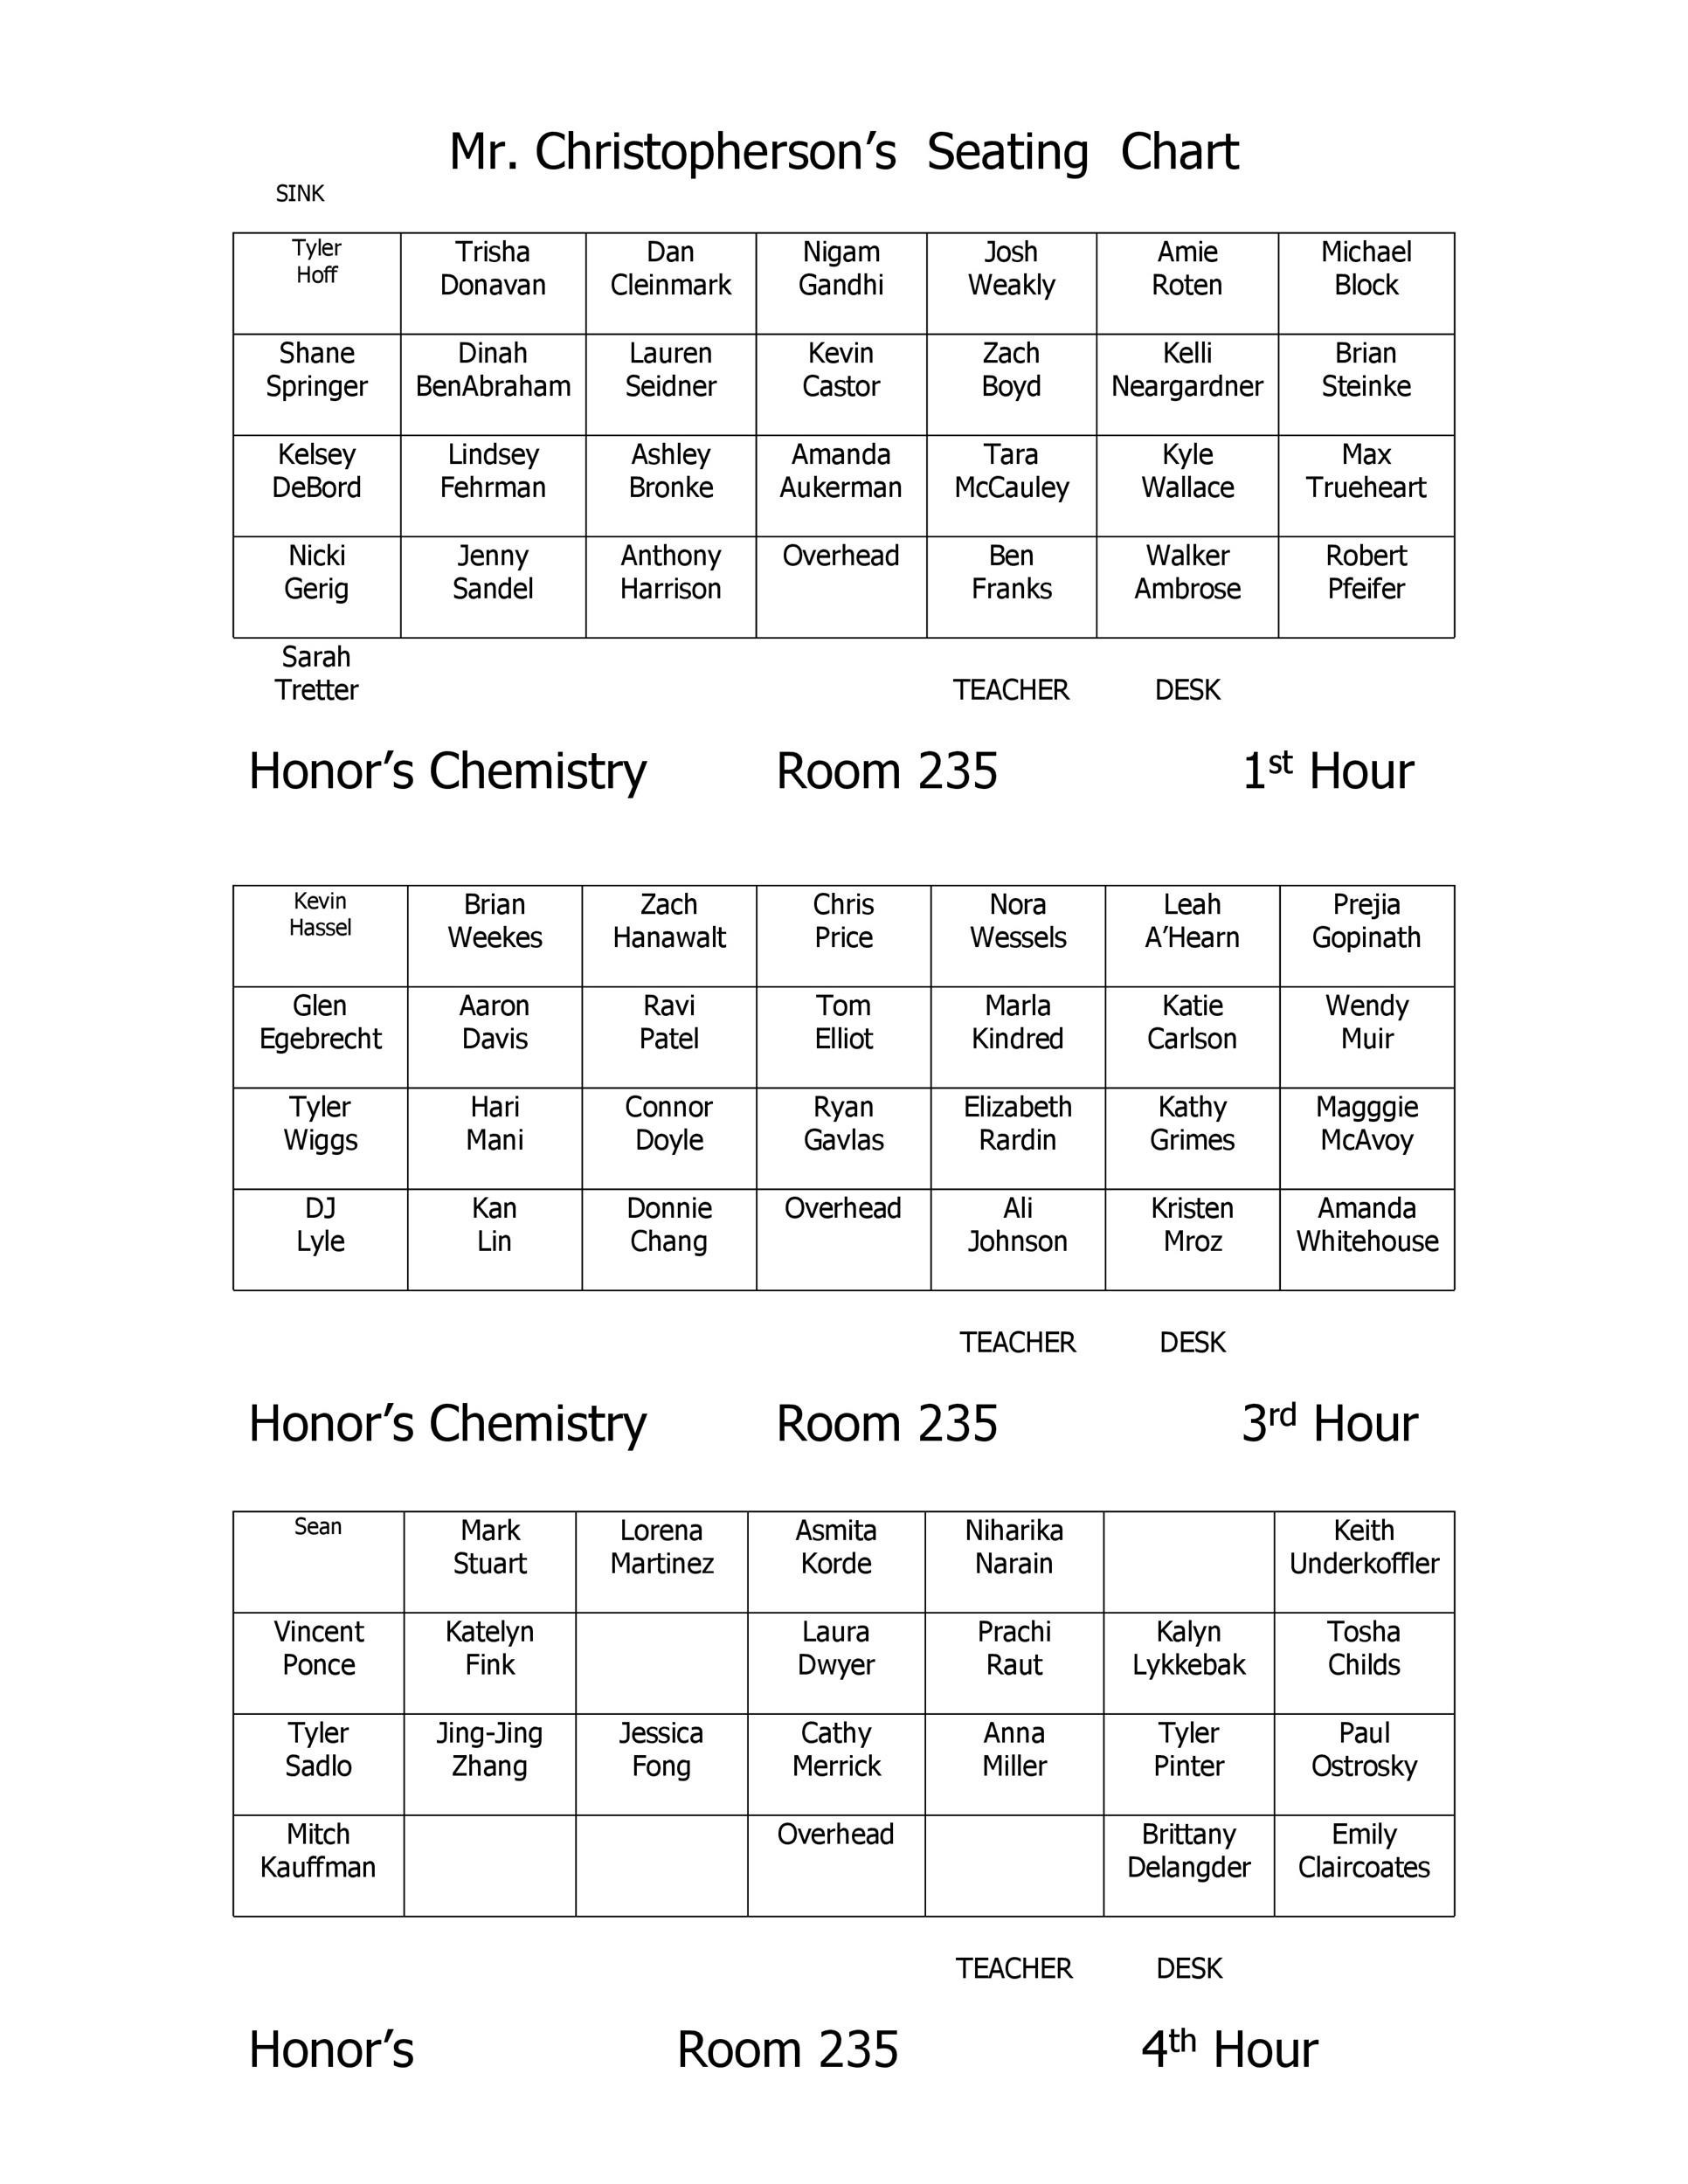 Free seating chart template 31